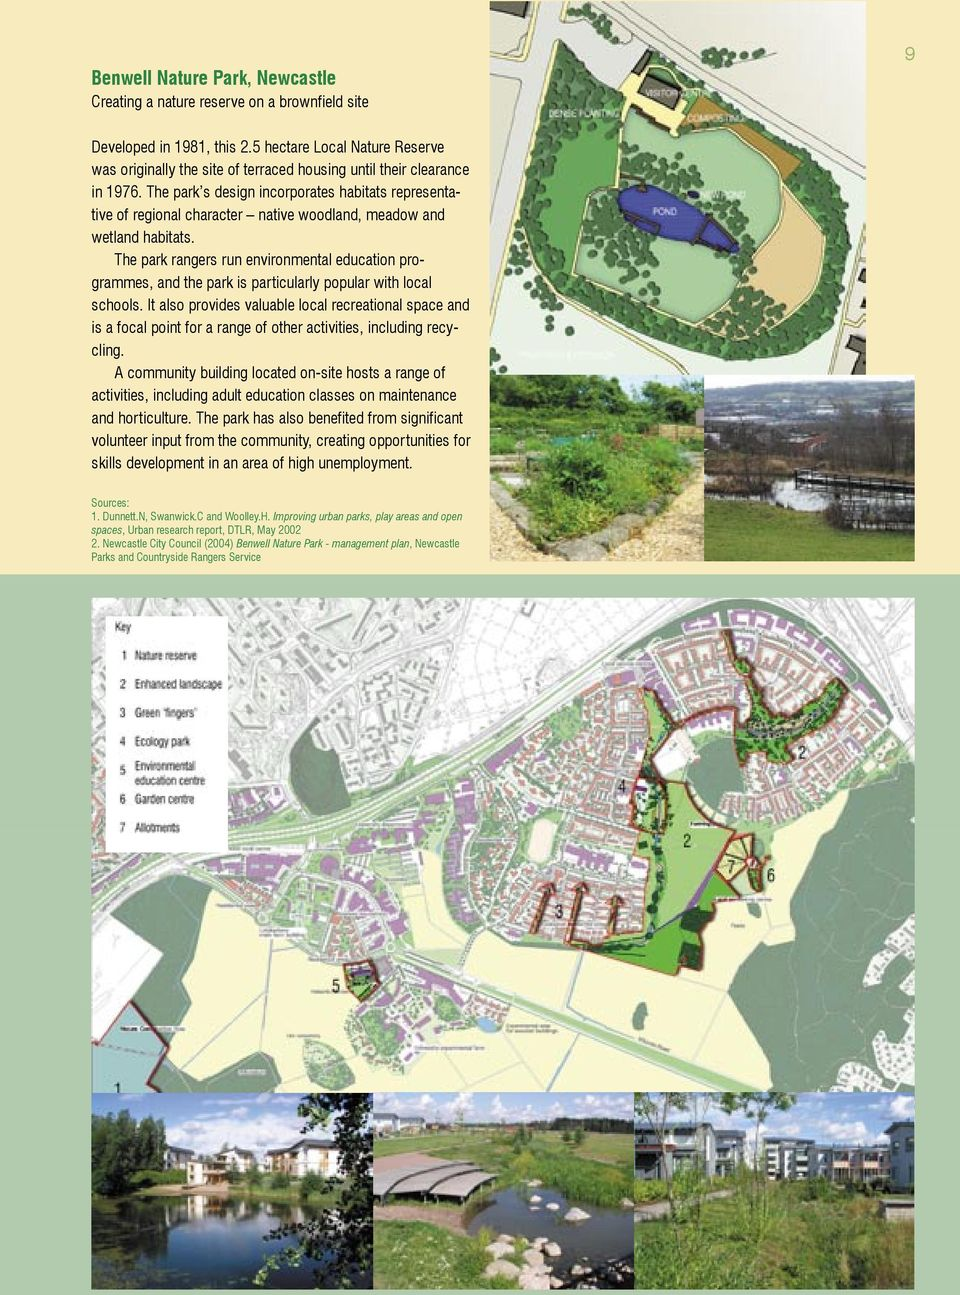 The park s design incorporates habitats representative of regional character native woodland, meadow and wetland habitats.